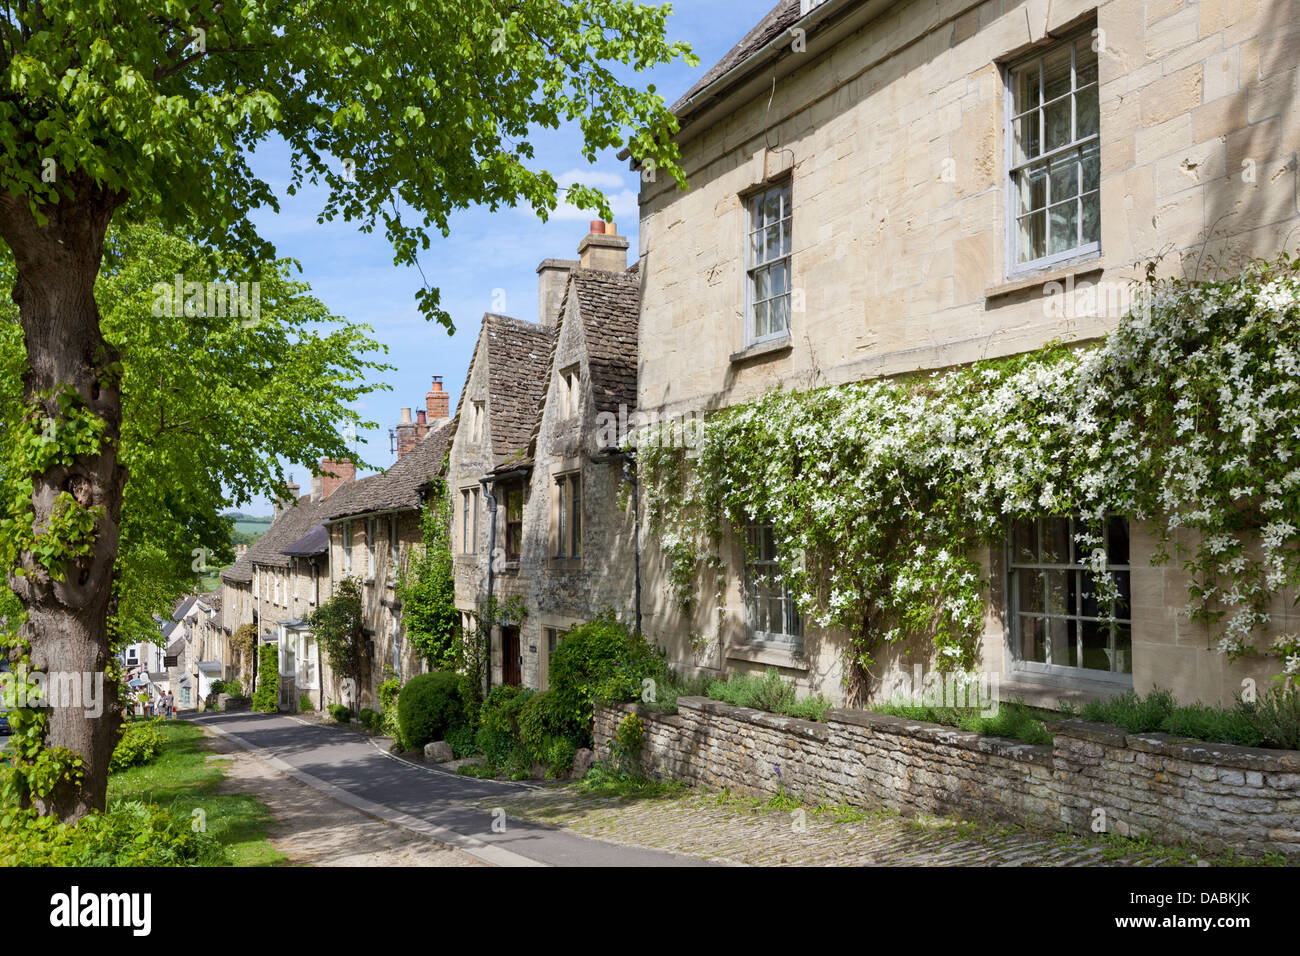 Cotswold cottages along The Hill, Burford, Oxfordshire, England, United Kingdom, Europe - Stock Image